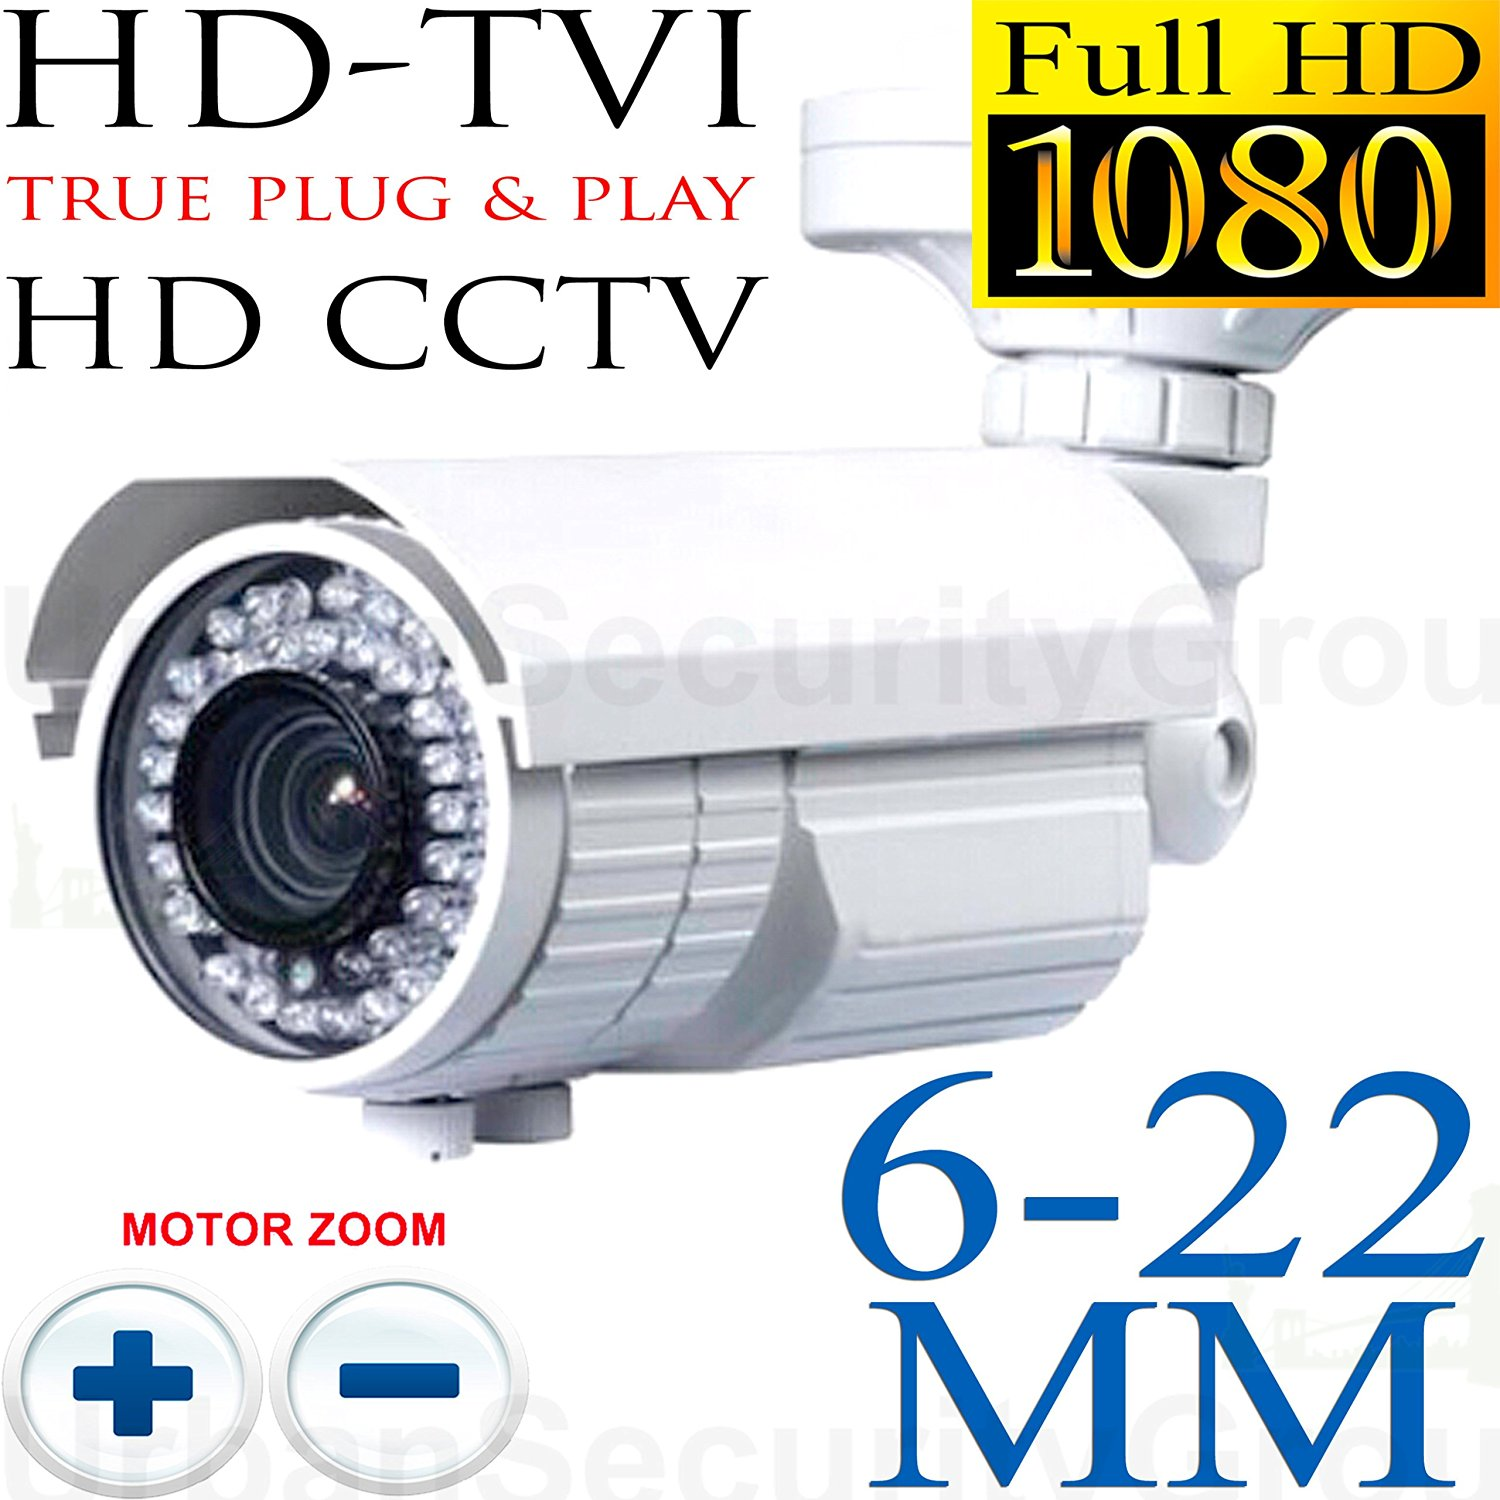 USG Sony DSP HD-TVI CCTV Format 6-22mm Motorized Lens 1080P 2.4MP Bullet Security Camera: 1920*1080 HD, Remote Zoom & Auto-Focus, 72x IR LEDs, IR-Cut, WDR, Motion Detection, DNR, OSD, PTZ Zoom